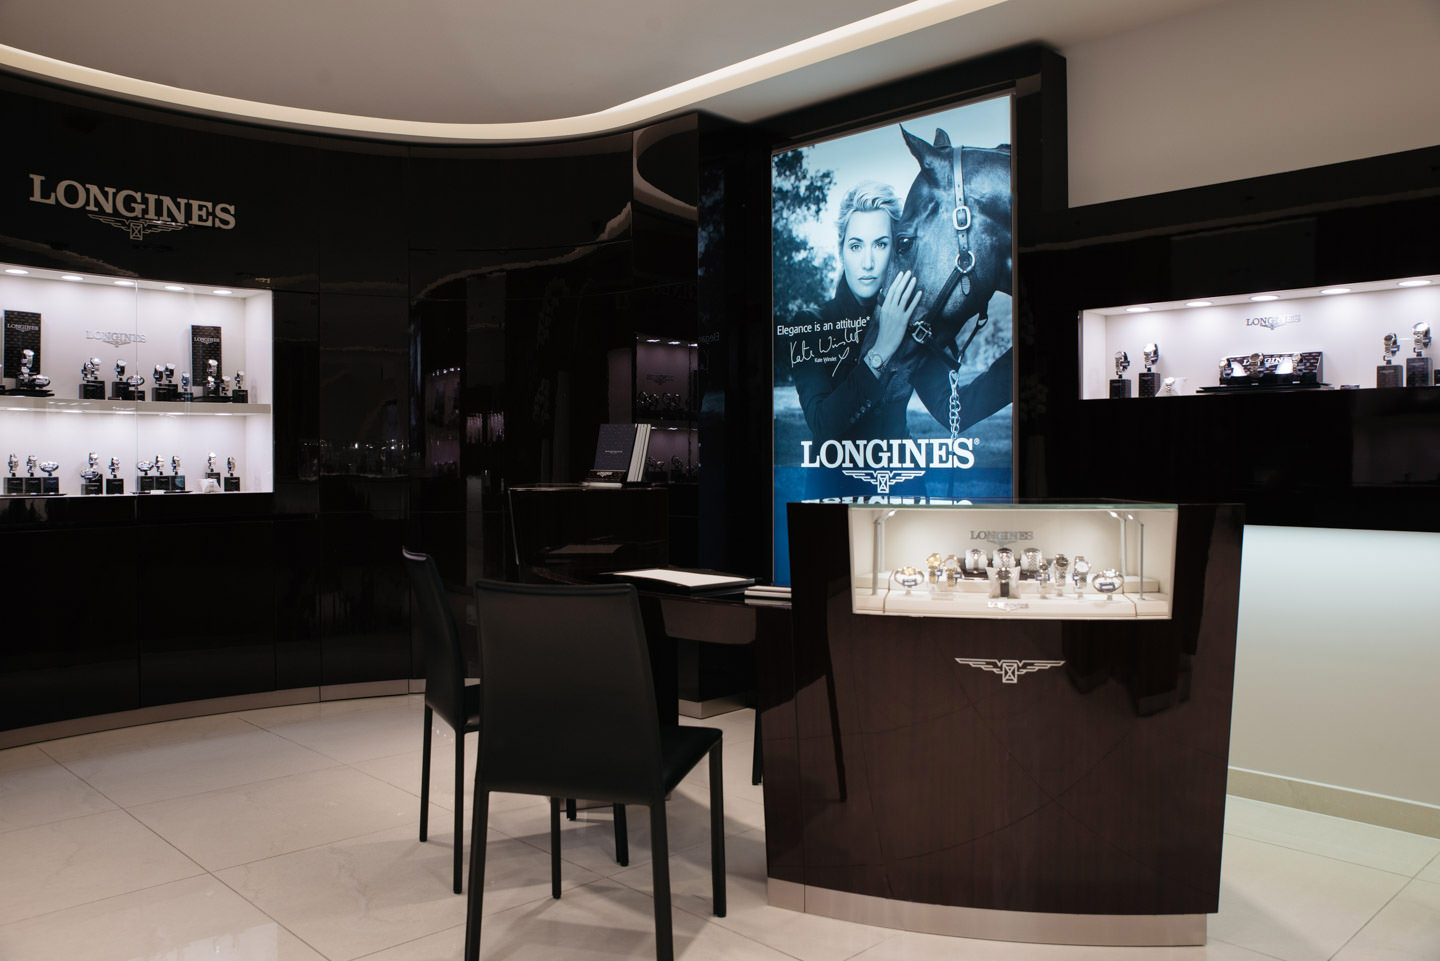 Blog-Mode-And-The-City-Lifestyle-Prix-de-Diane-Longines-2016-19